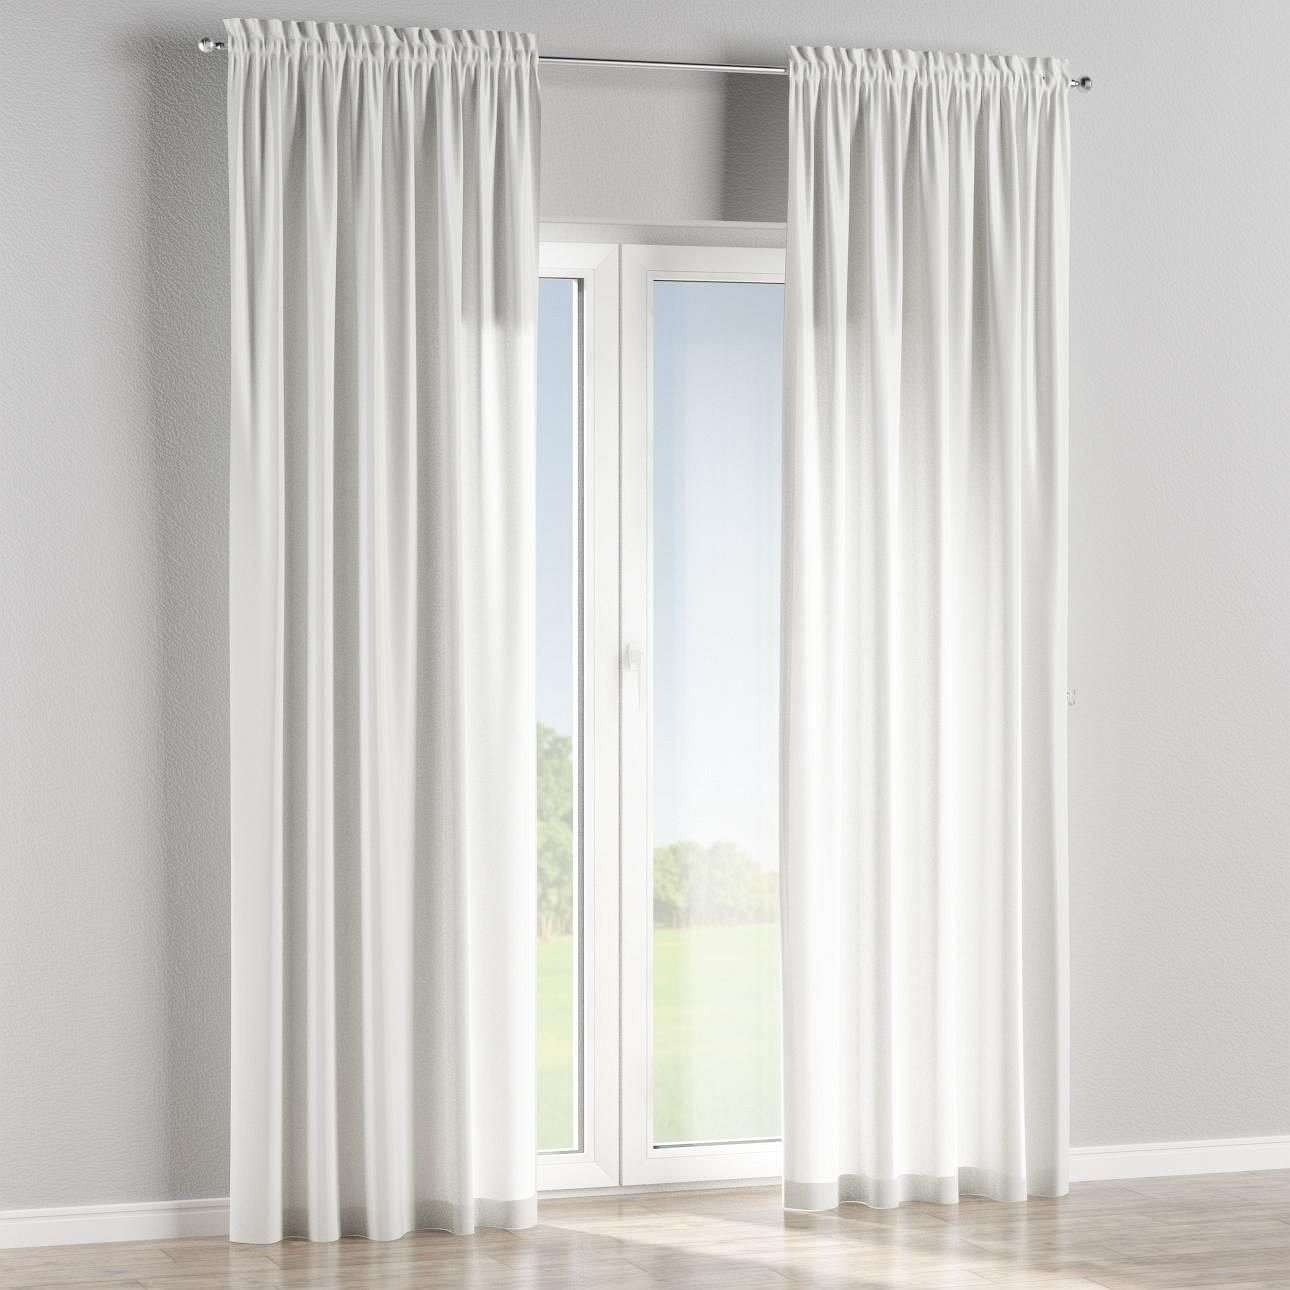 Slot and frill curtains in collection Taffeta , fabric: 103-98